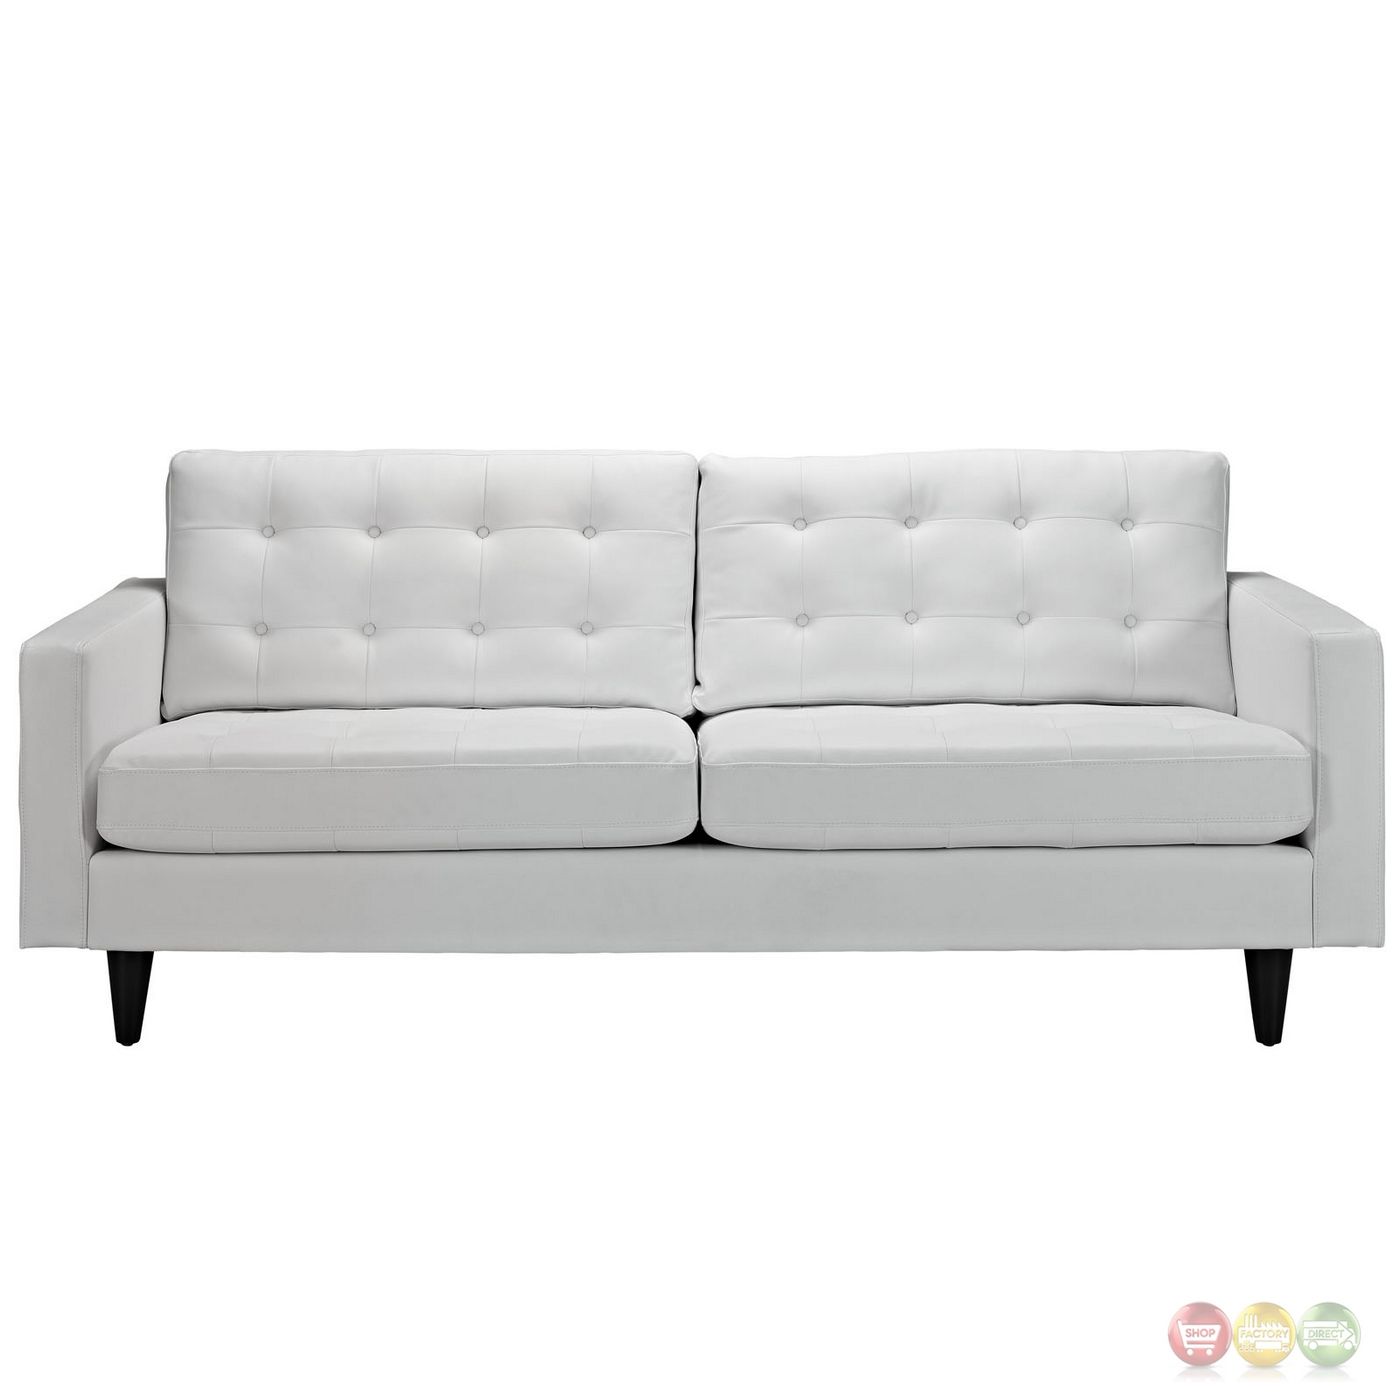 button tufted sofas sofa express sectional empress contemporary leather white